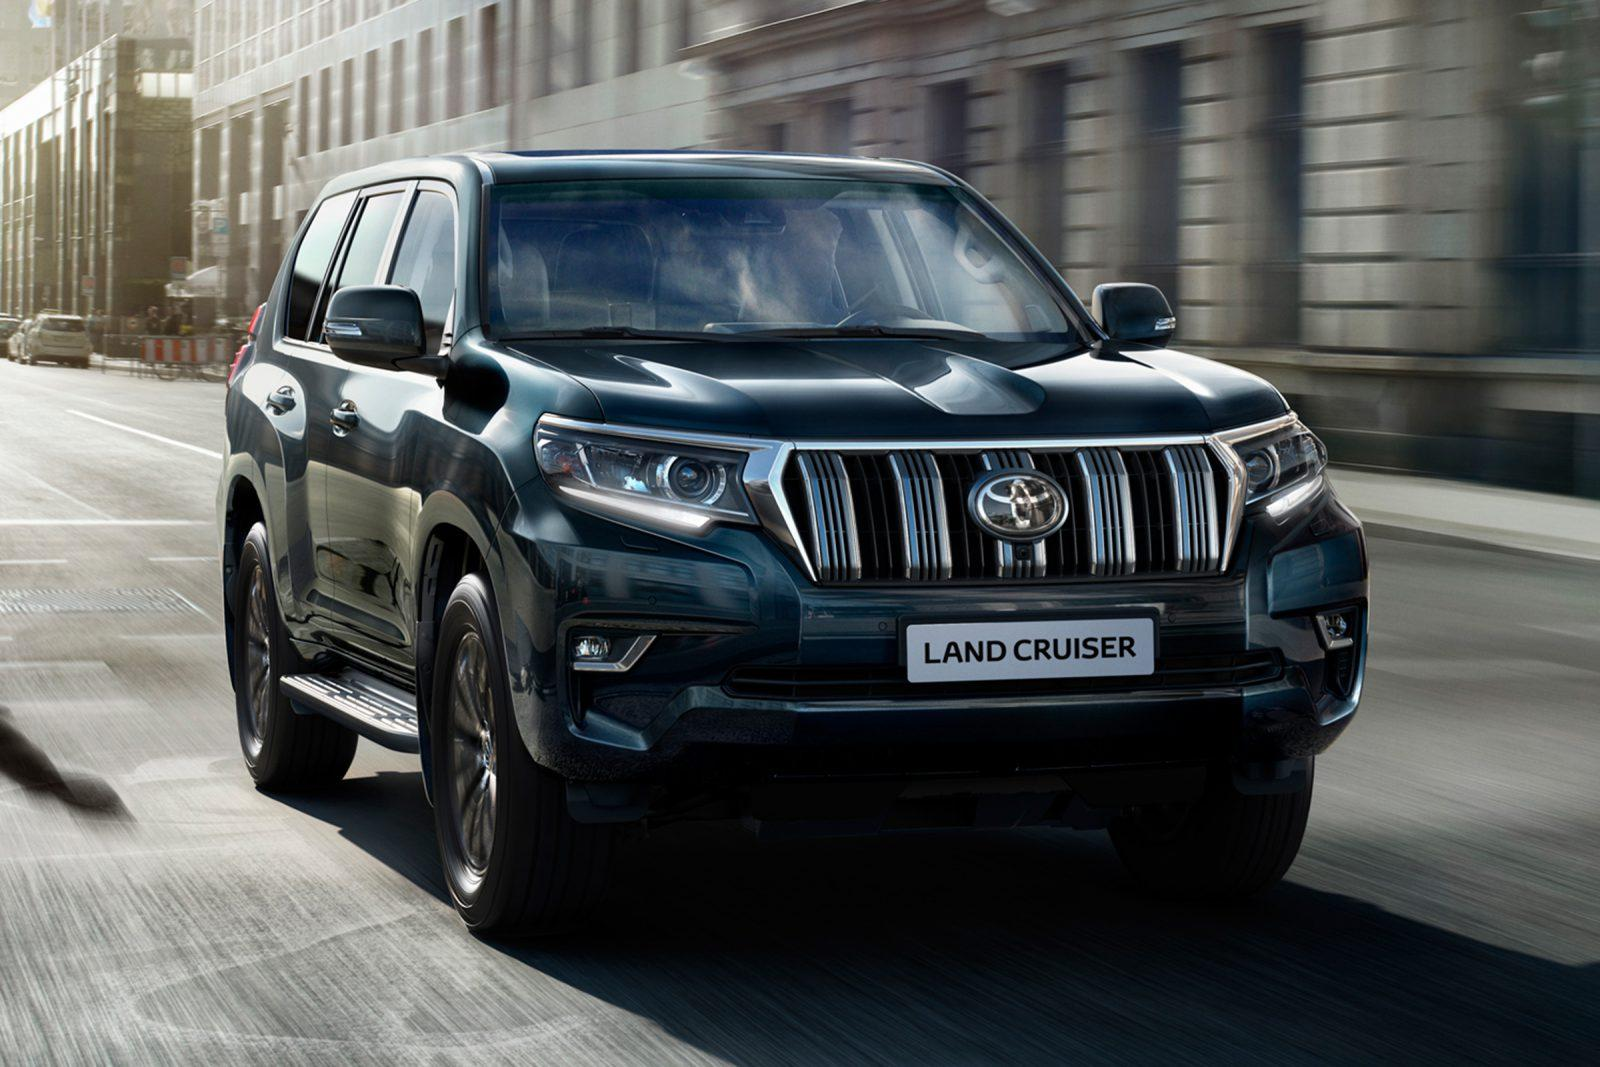 Why Are Land Cruisers So Expensive? Everything You Need To Know